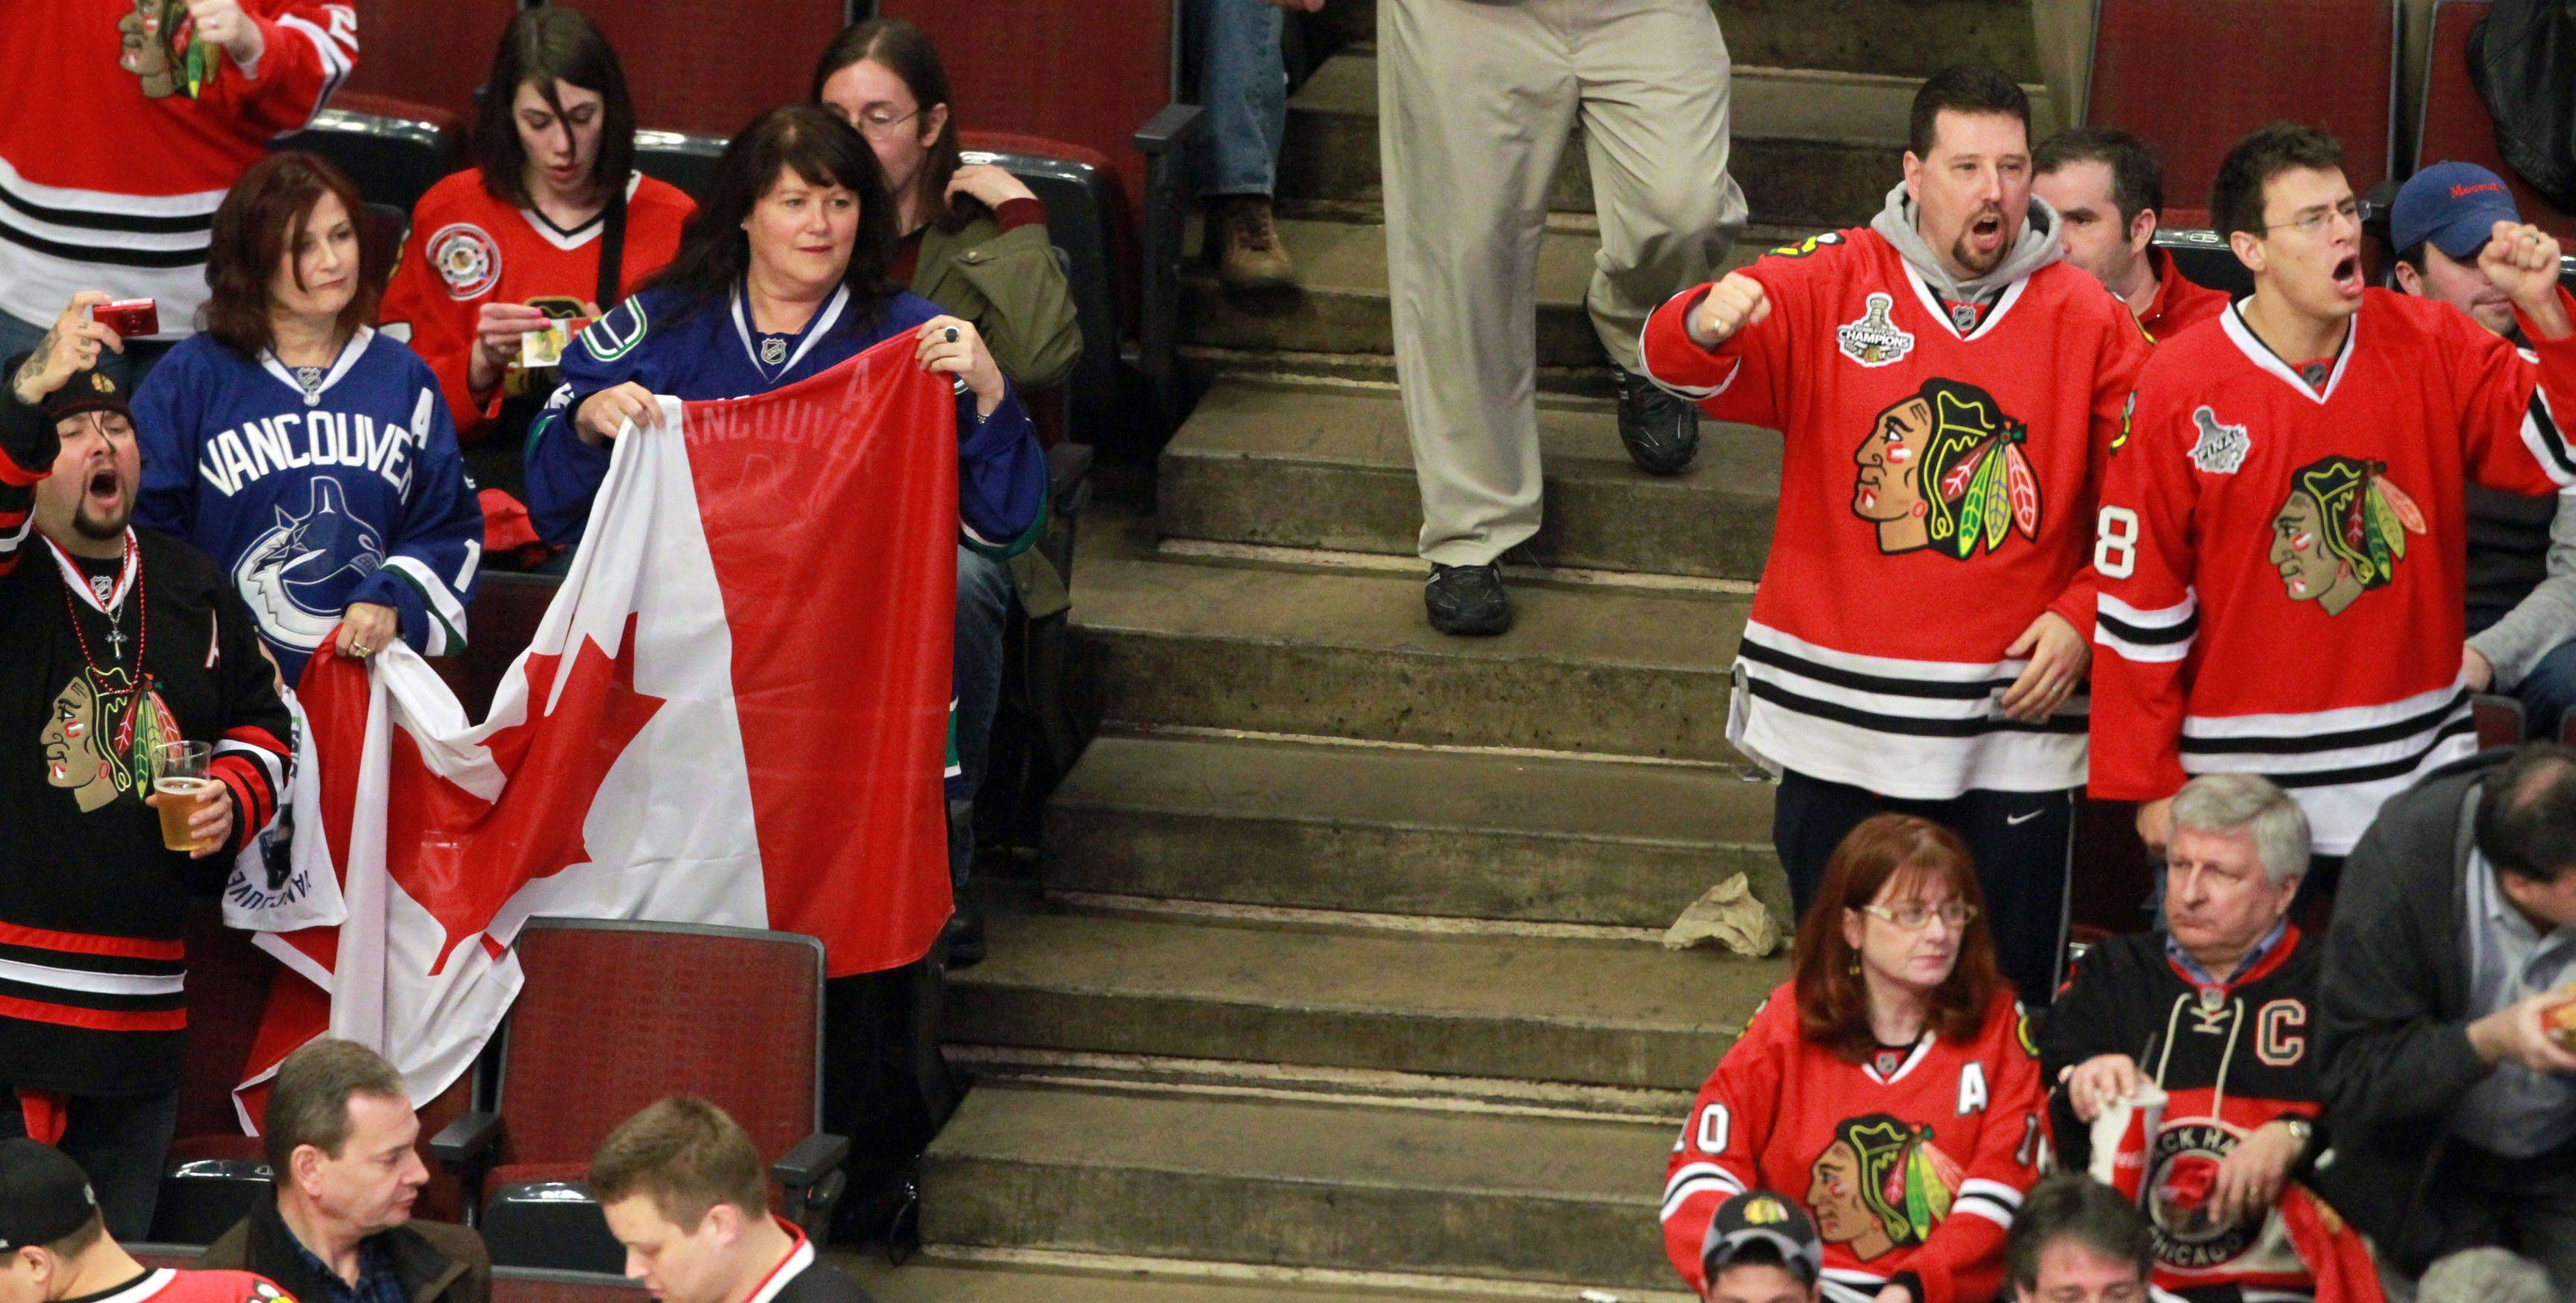 Chicago Blackhawks and Vancouver Canucks fans at game 6 of the Stanley Cup quarterfinals at the United Center in Chicago on Sunday.